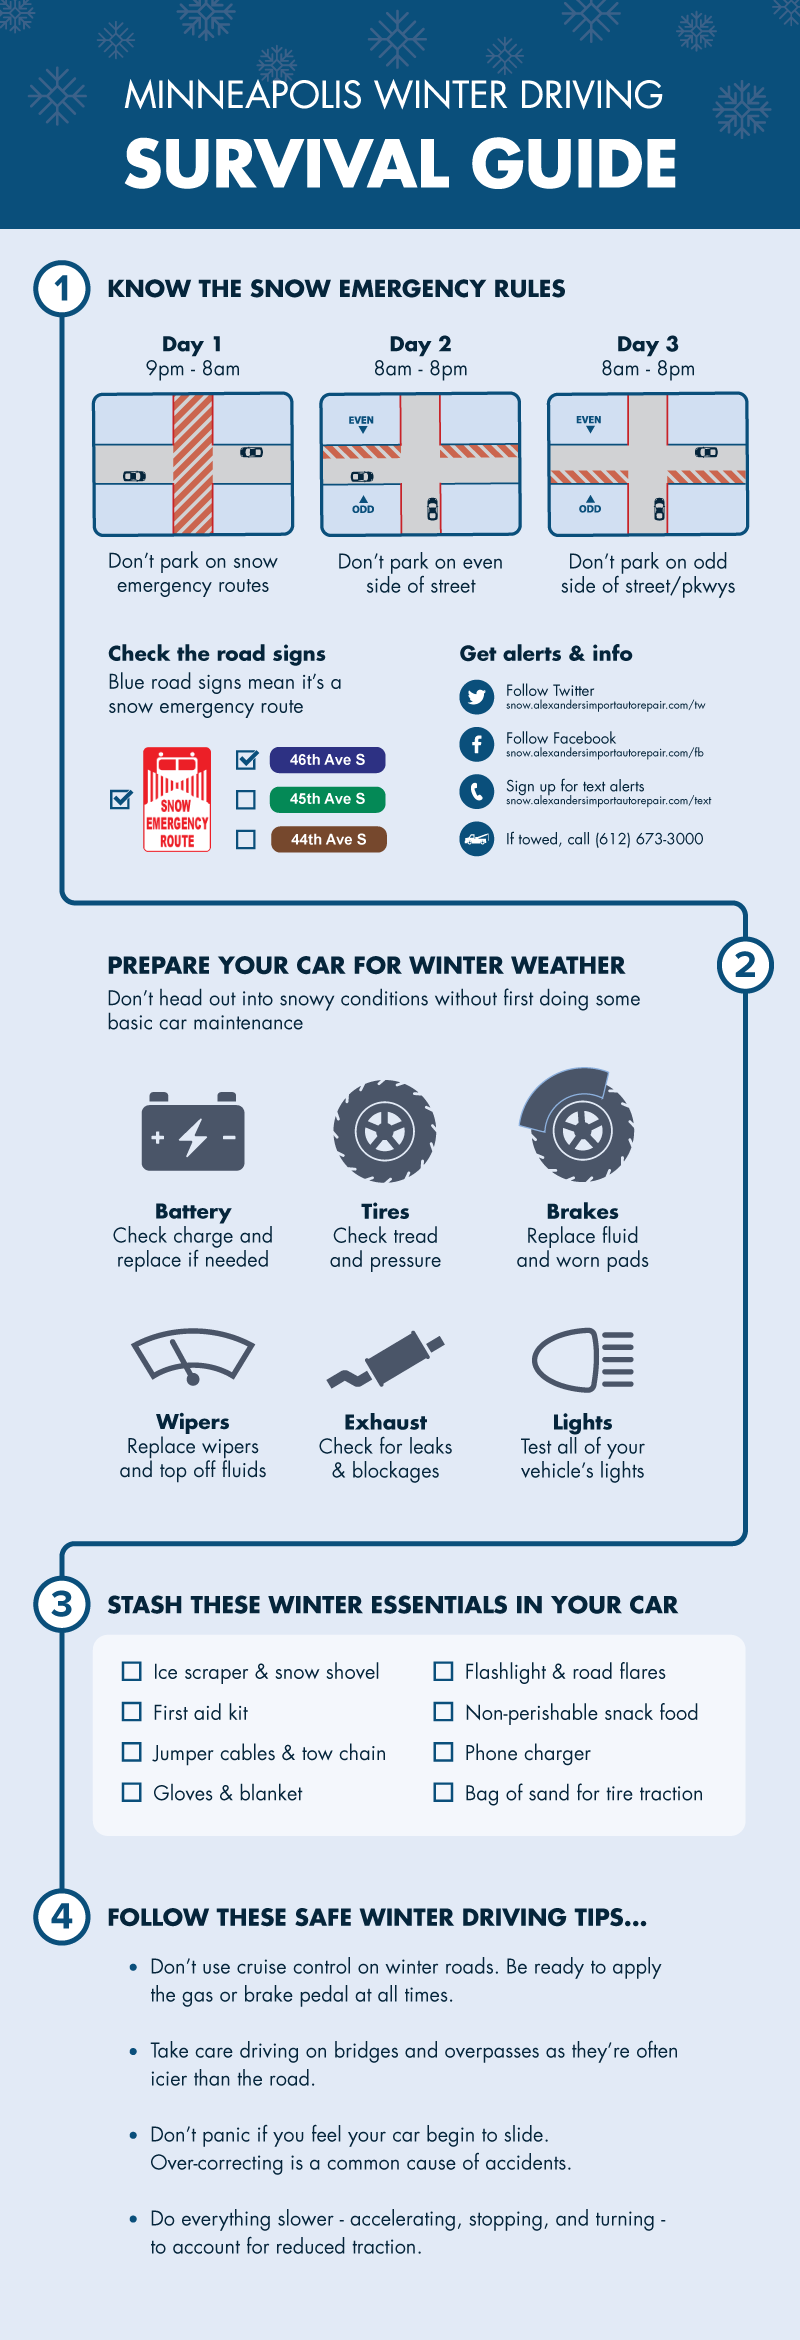 minneapolis winter driving tips and snow emergency rules